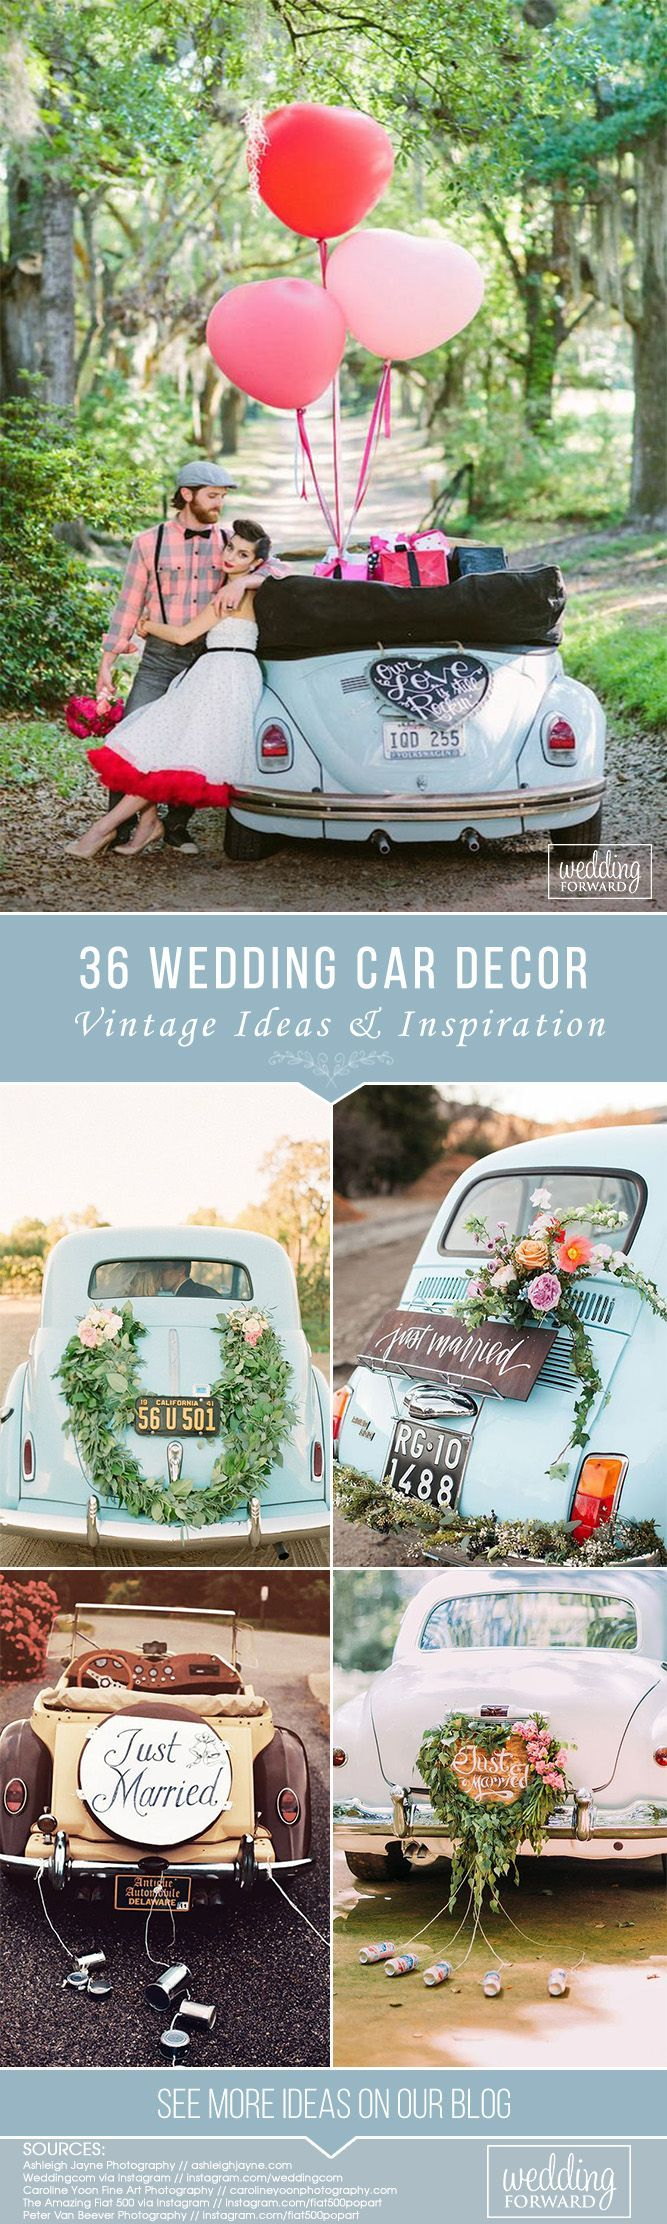 Wedding decorations for car   Vintage Wedding Car Decorations Ideas  wedding  Pinterest